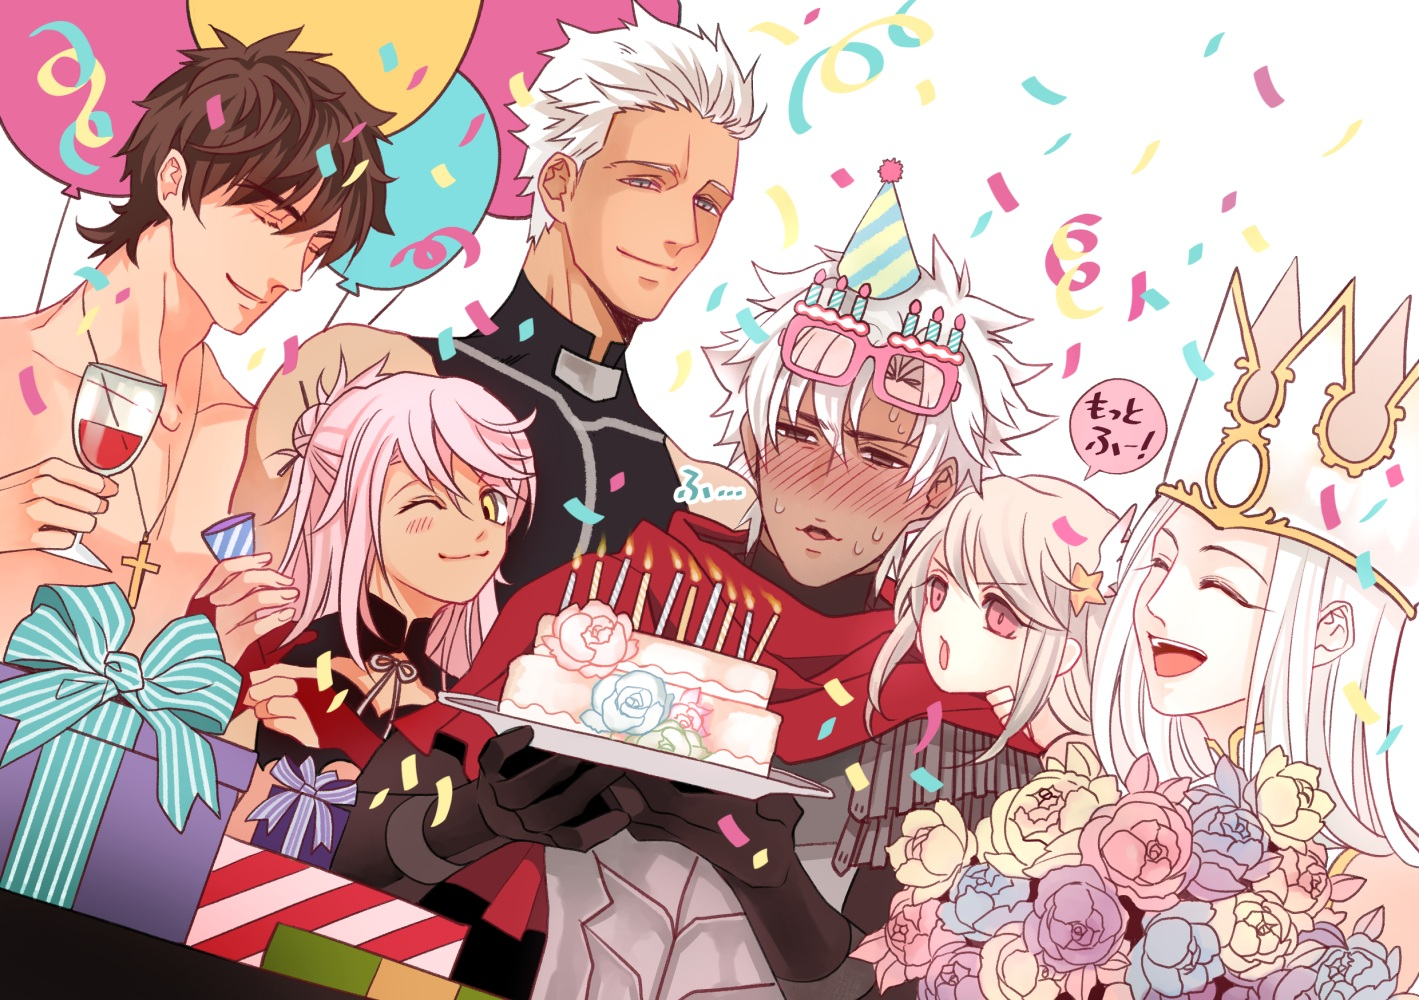 archer armor blush brown_eyes brown_hair cake cape chloe_von_einzbern cross crown drink elbow_gloves fate/grand_order fate_(series) flowers food glasses gloves gray_eyes group illyasviel_von_einzbern irisviel_von_einzbern kotomine_kirei loli long_hair male necklace pink_hair red_eyes shirou_kotomine short_hair tagme_(artist) white_hair wink yellow_eyes